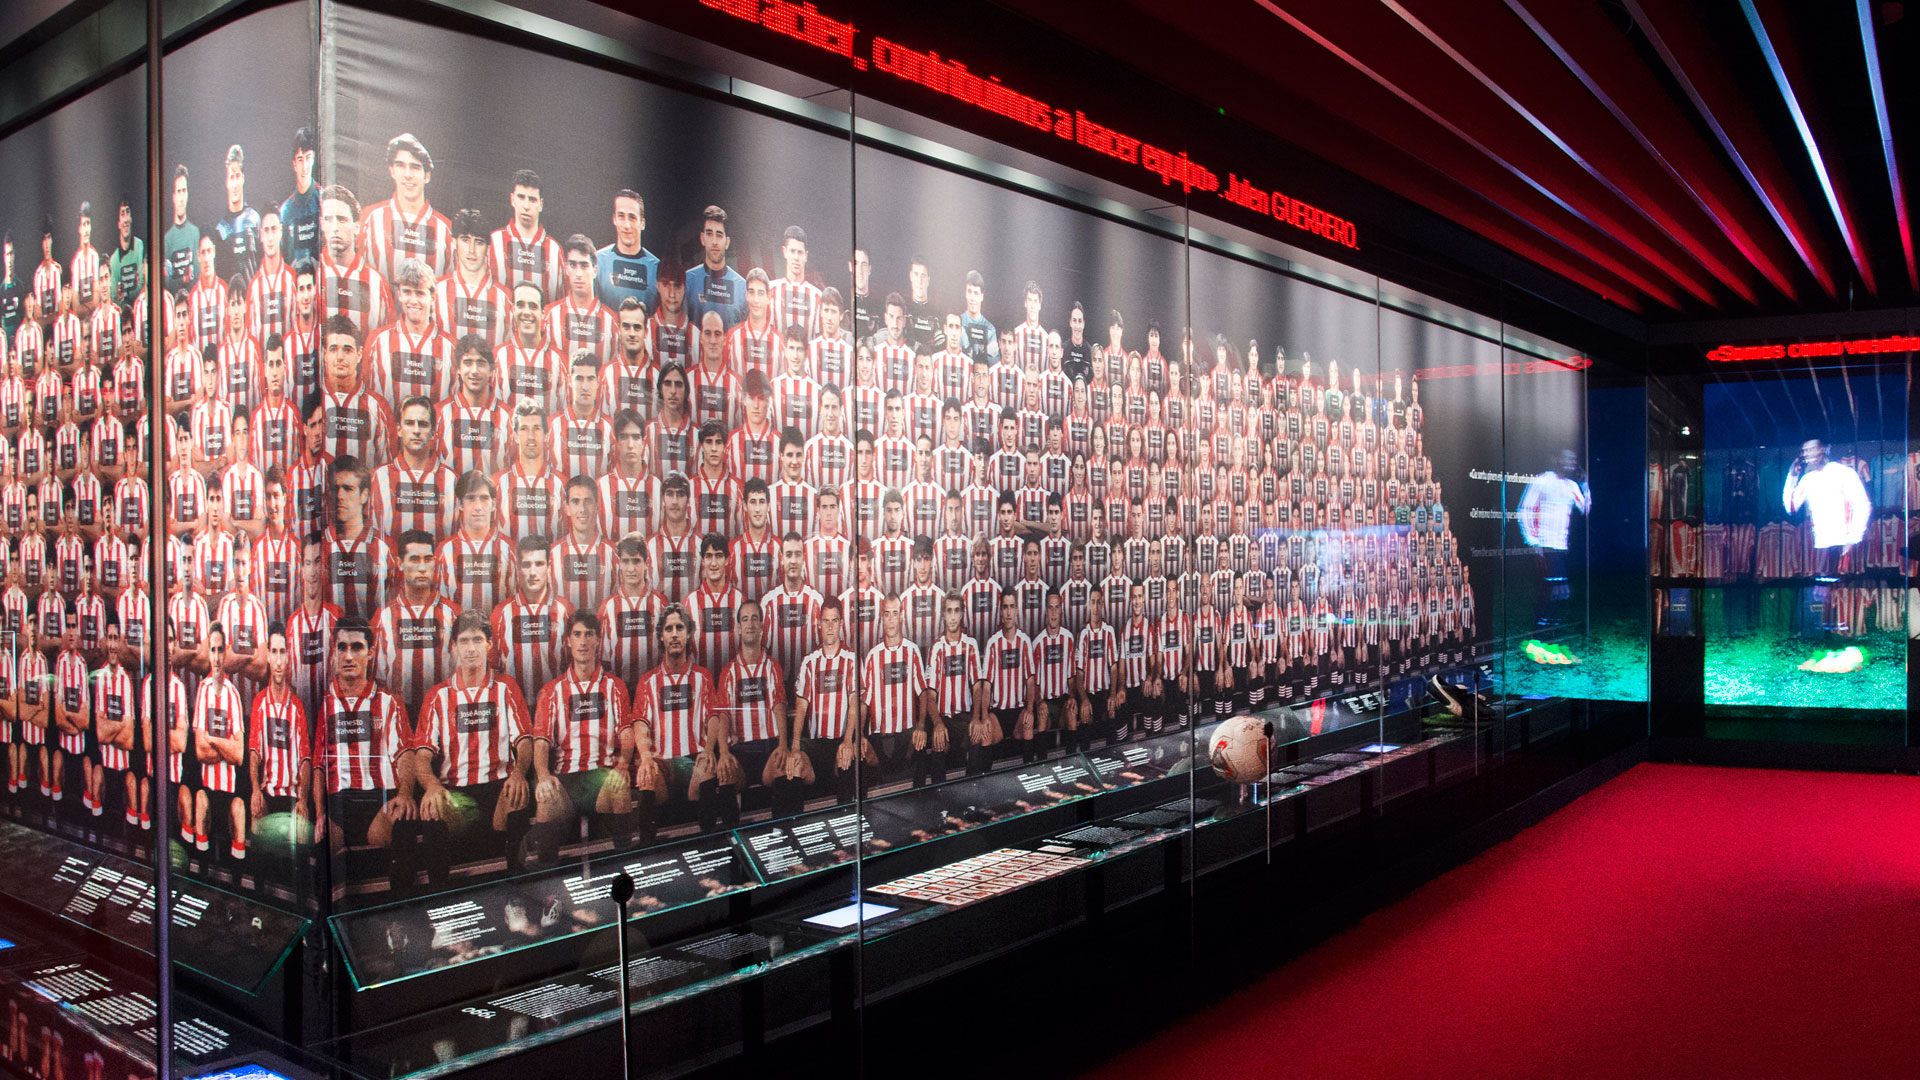 El Athletic Club Museoa pone en marcha su Programa Escolar